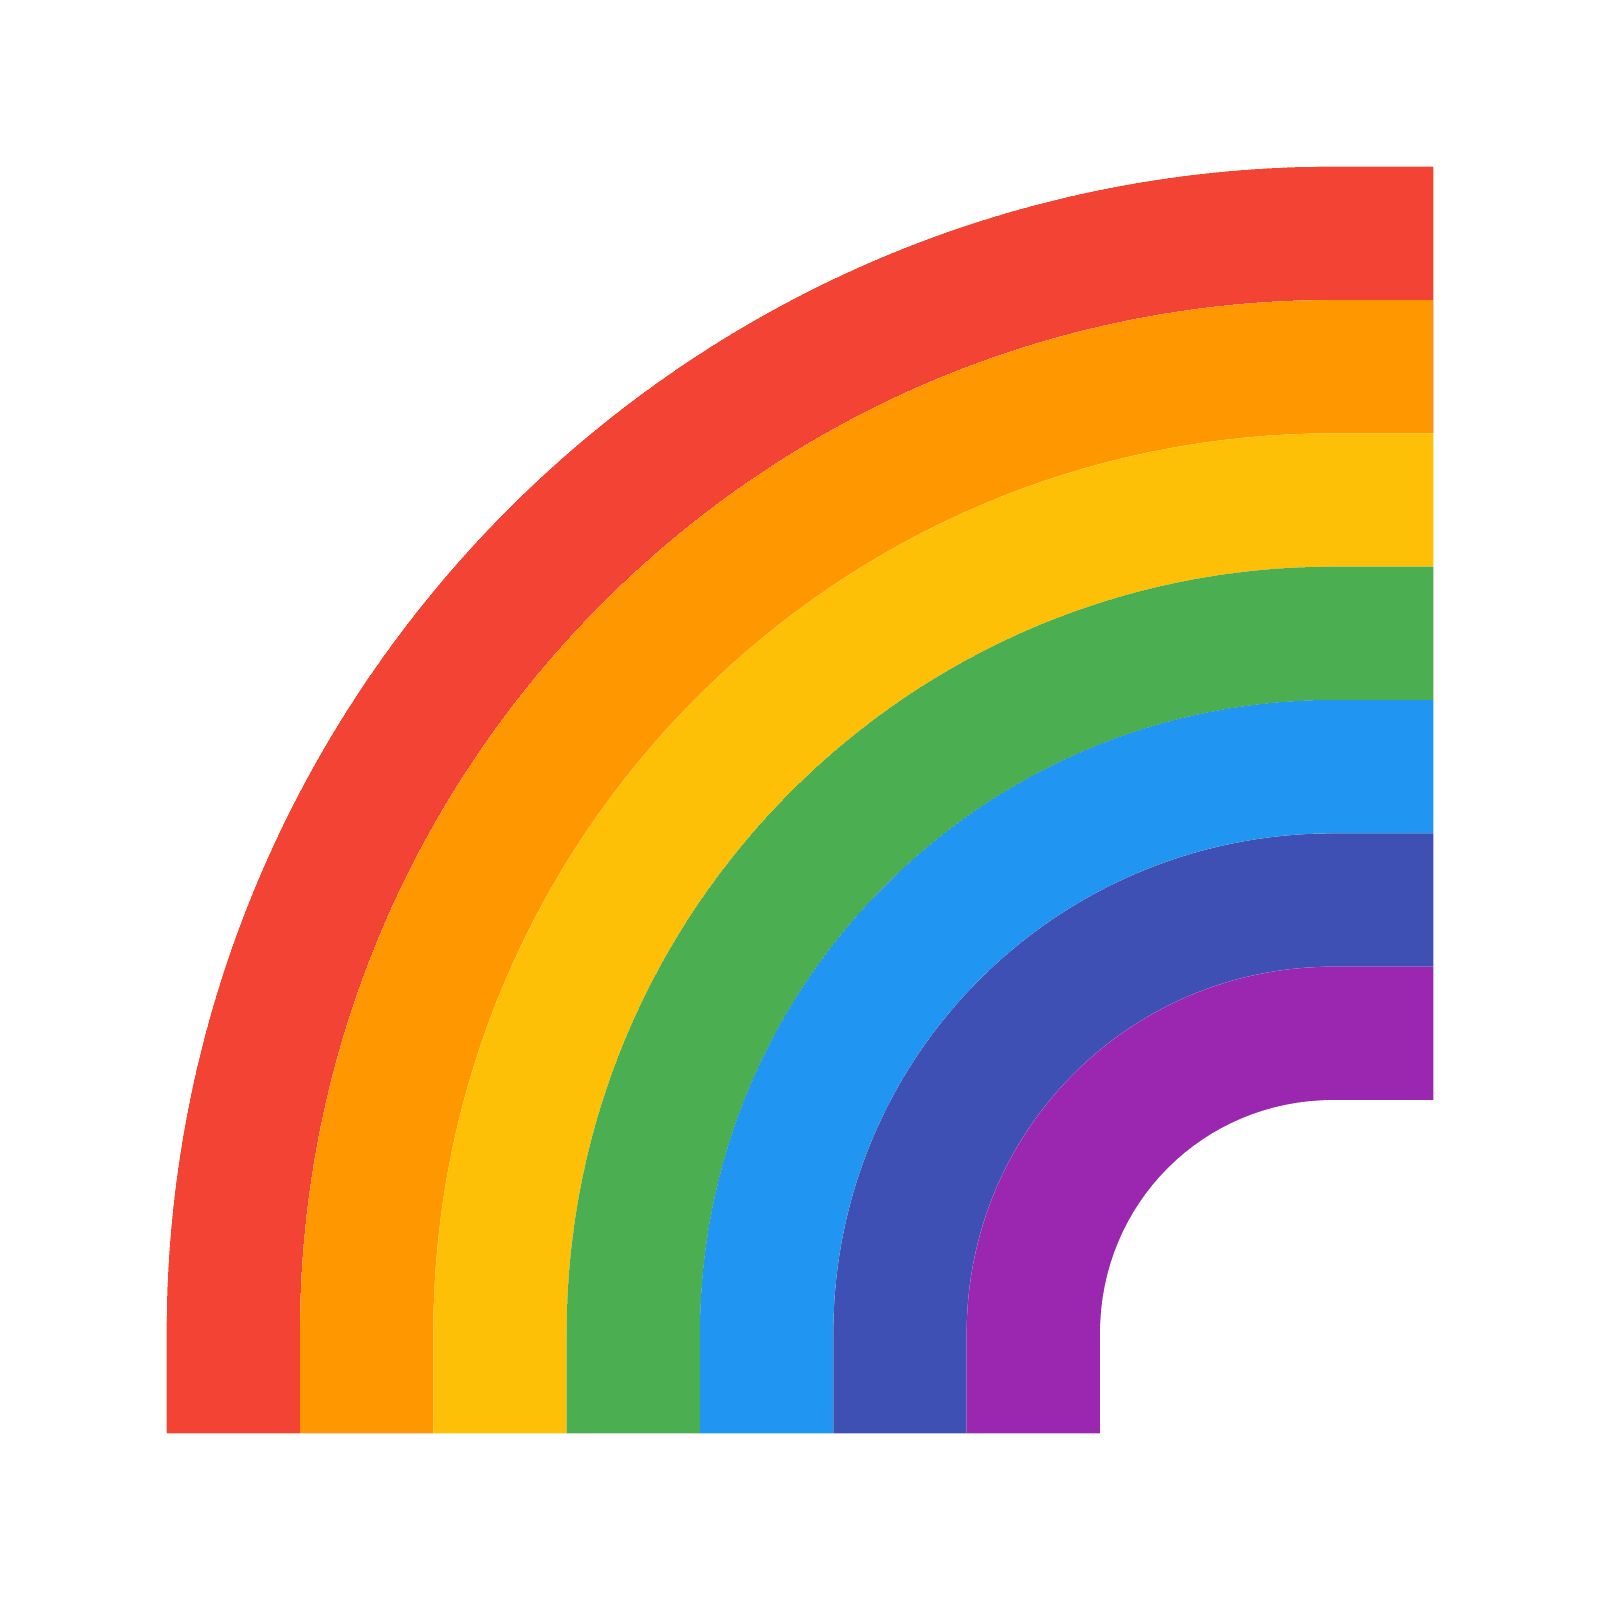 Rainbow vector png. Icon free download and